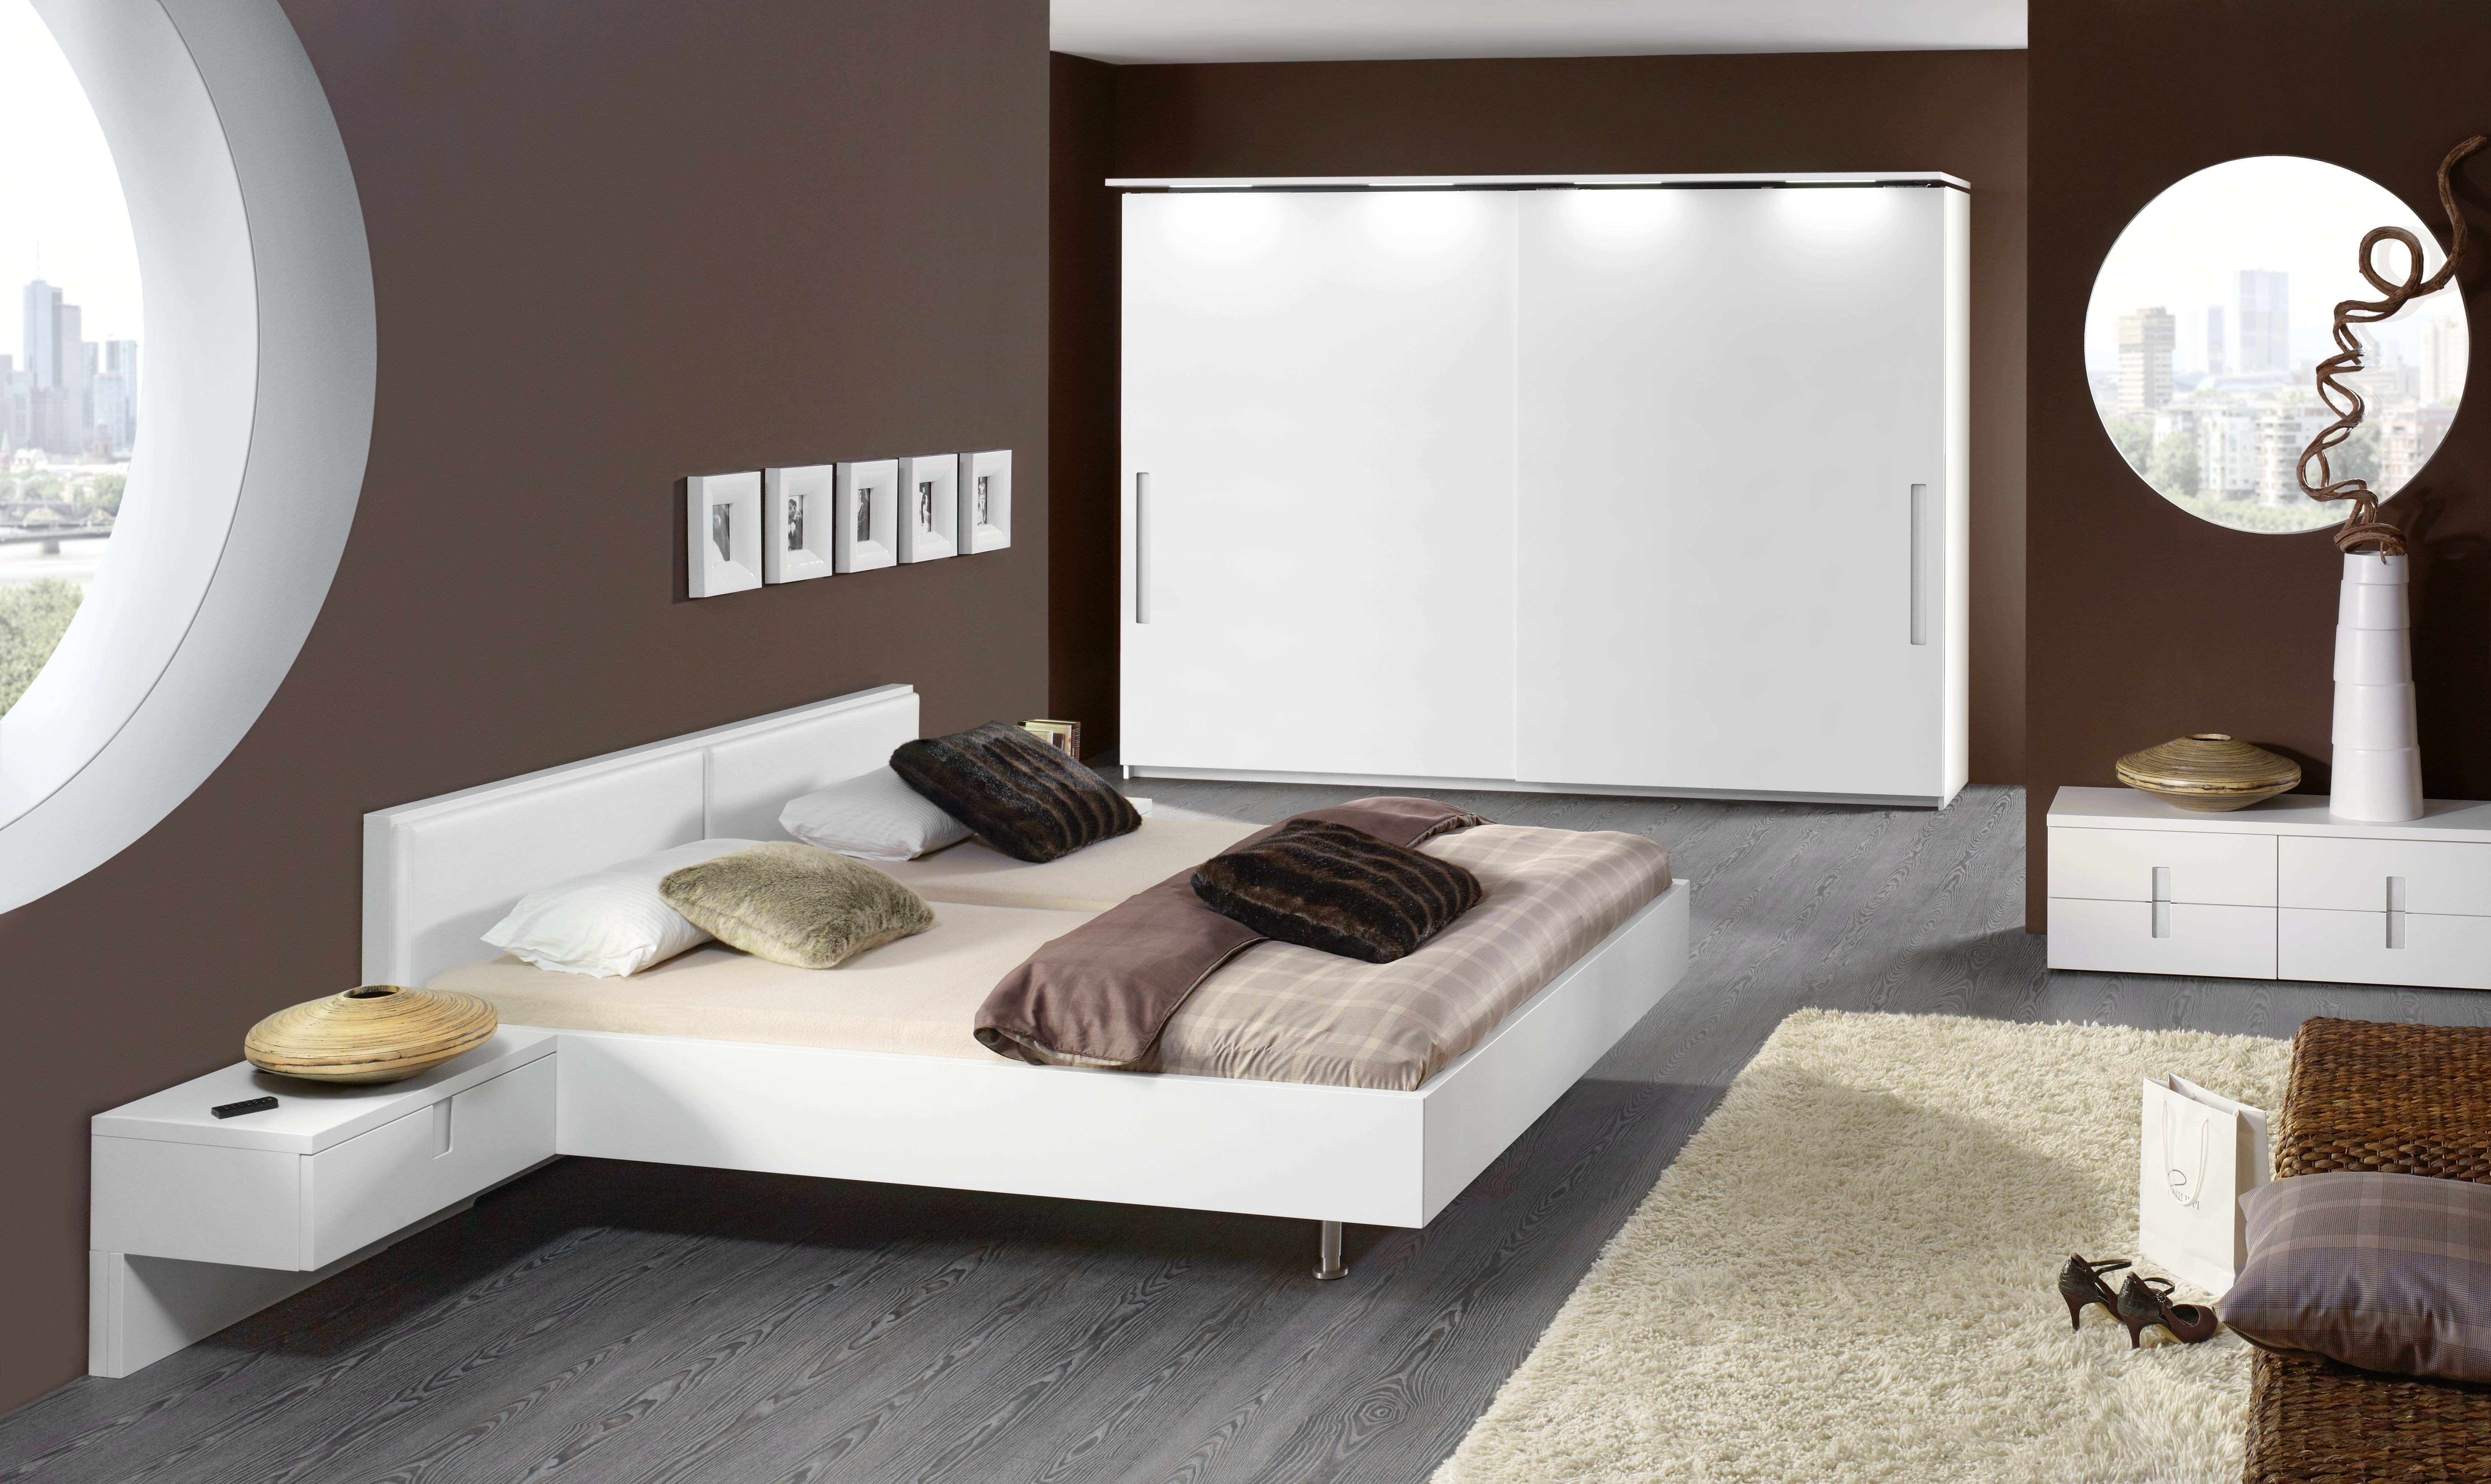 new bedroom ideas Criedineassistant